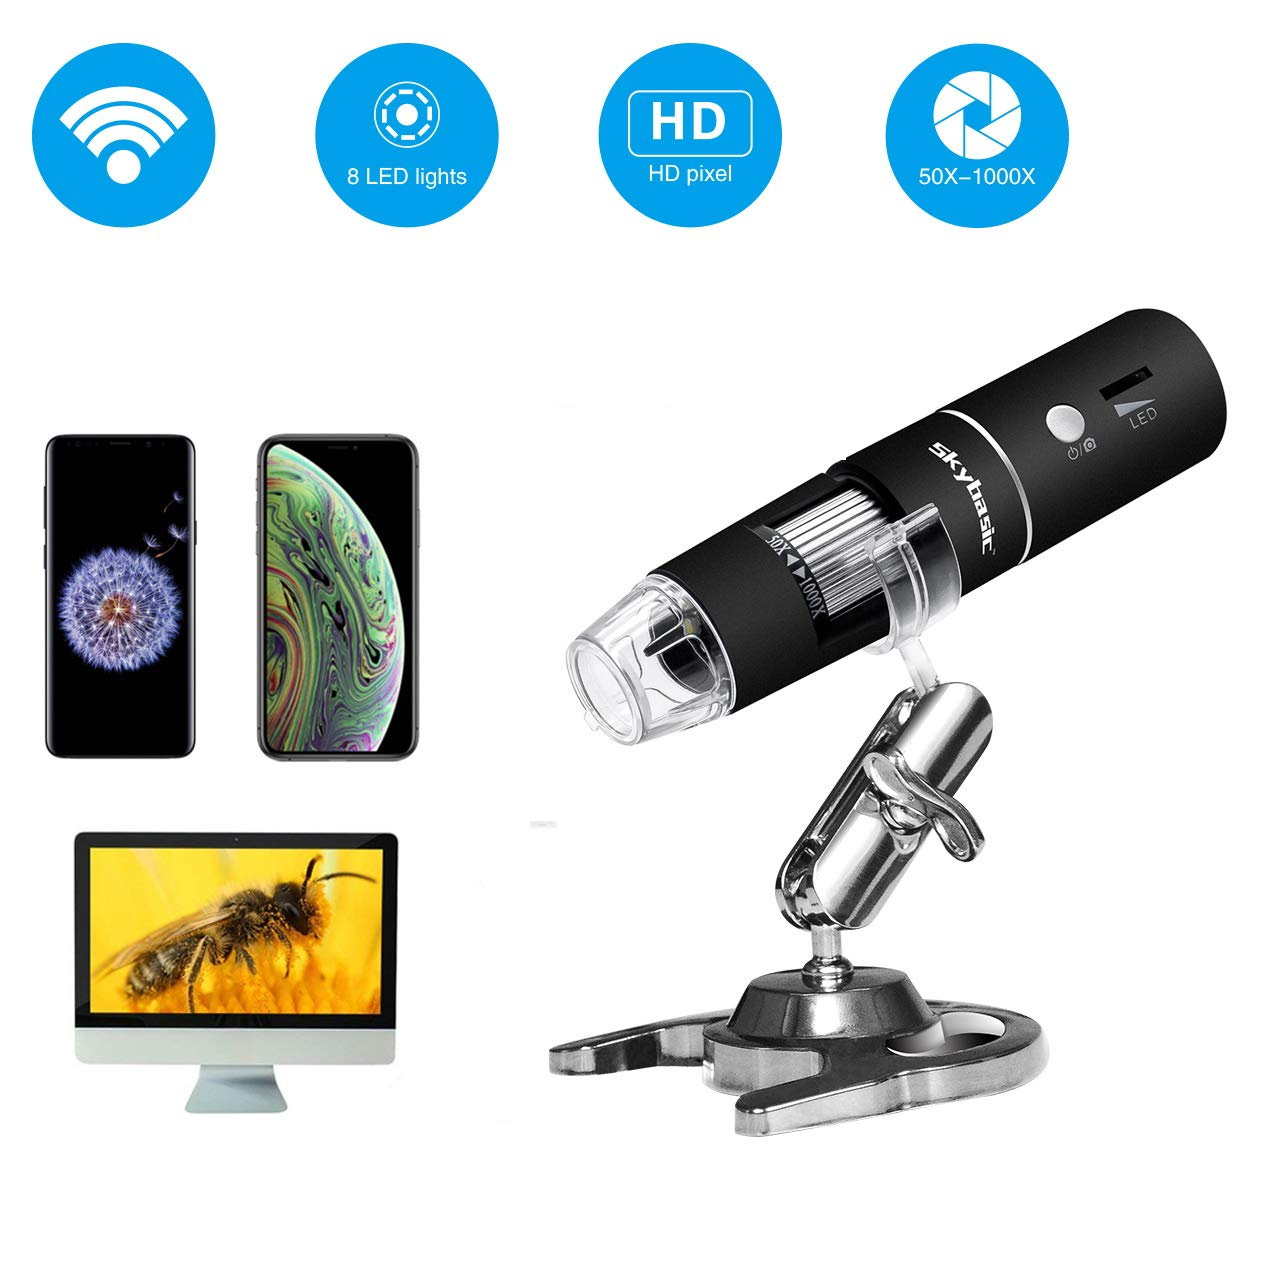 Skybasic WiFi Digital Microscope, 50X-1000X Handheld Digital Zoom Microscope Endoscope Magnifier HD 2MP 8 LED for Android and iOS Smartphone, iPhone, Samsung, iPad, Tablet, Windows Mac PC